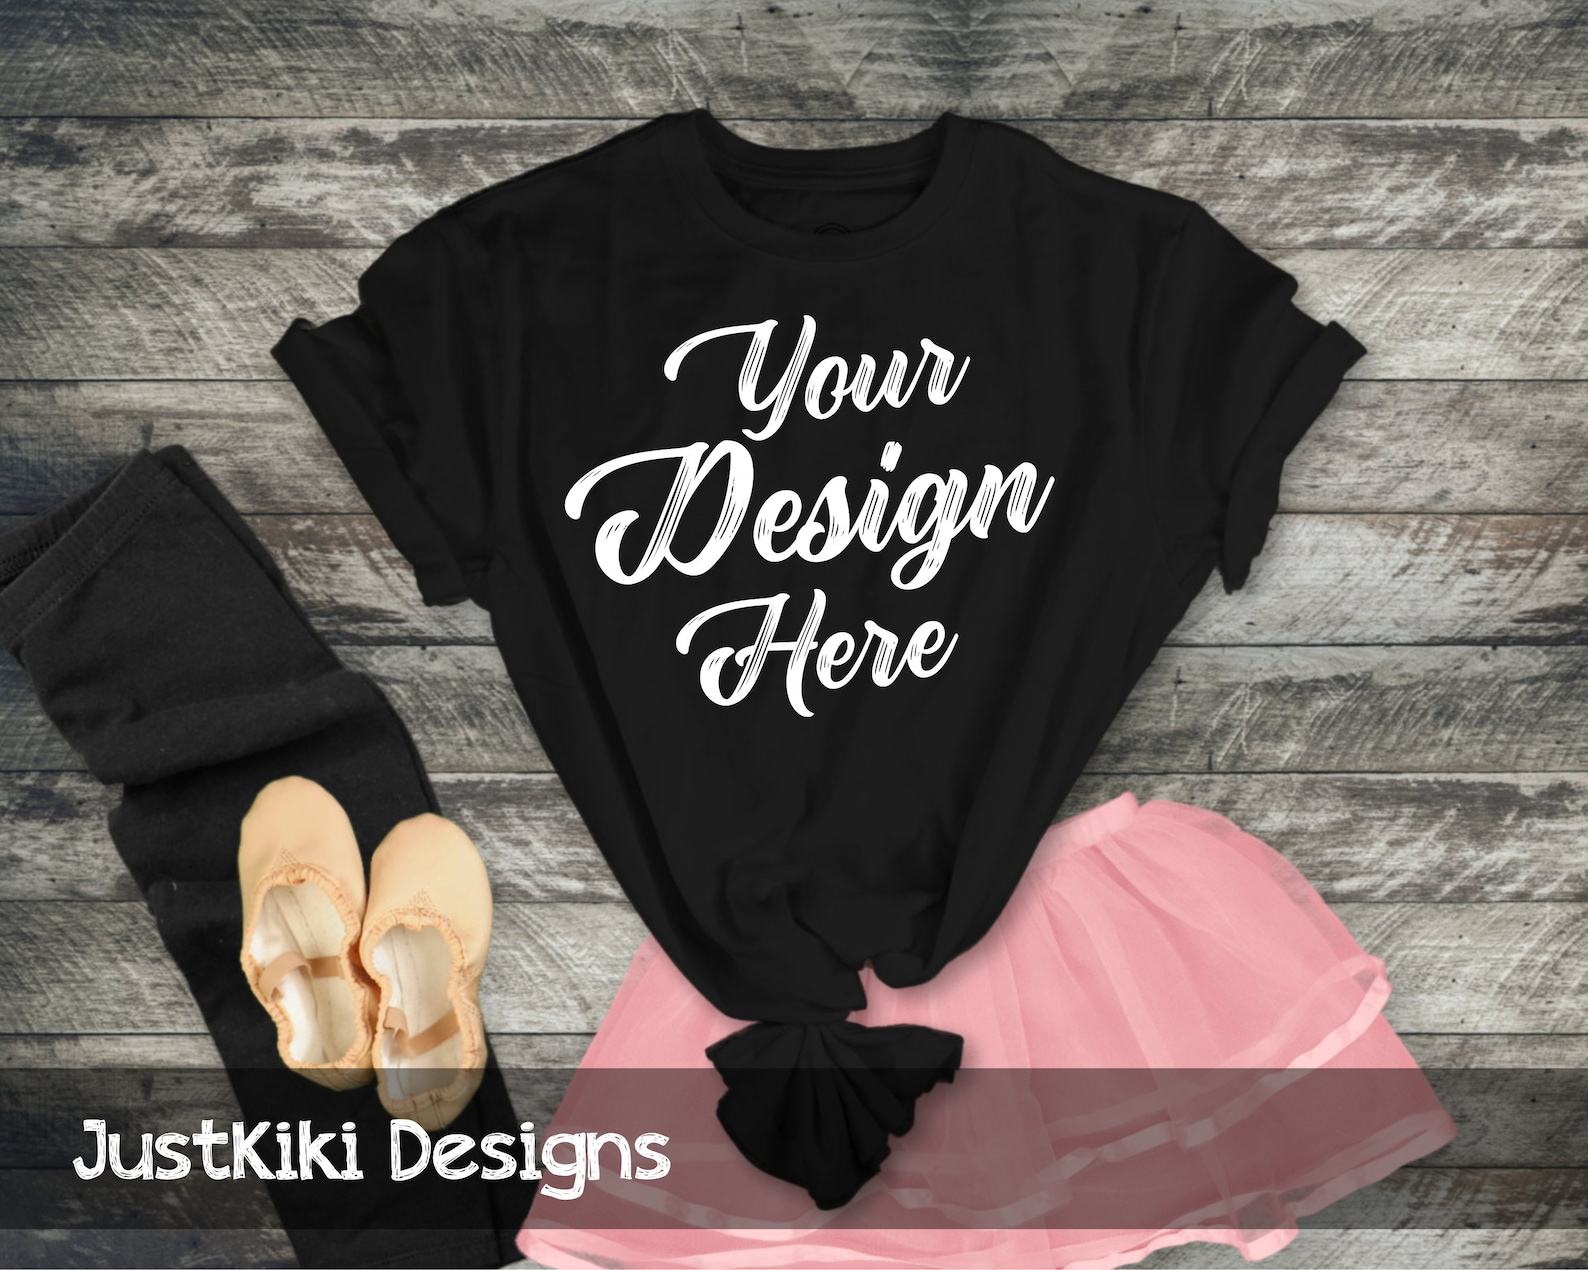 tshirt mockup - flat lay shirt - black t shirt mockup - rustic wood background pink ballet skirt and ballet shoes